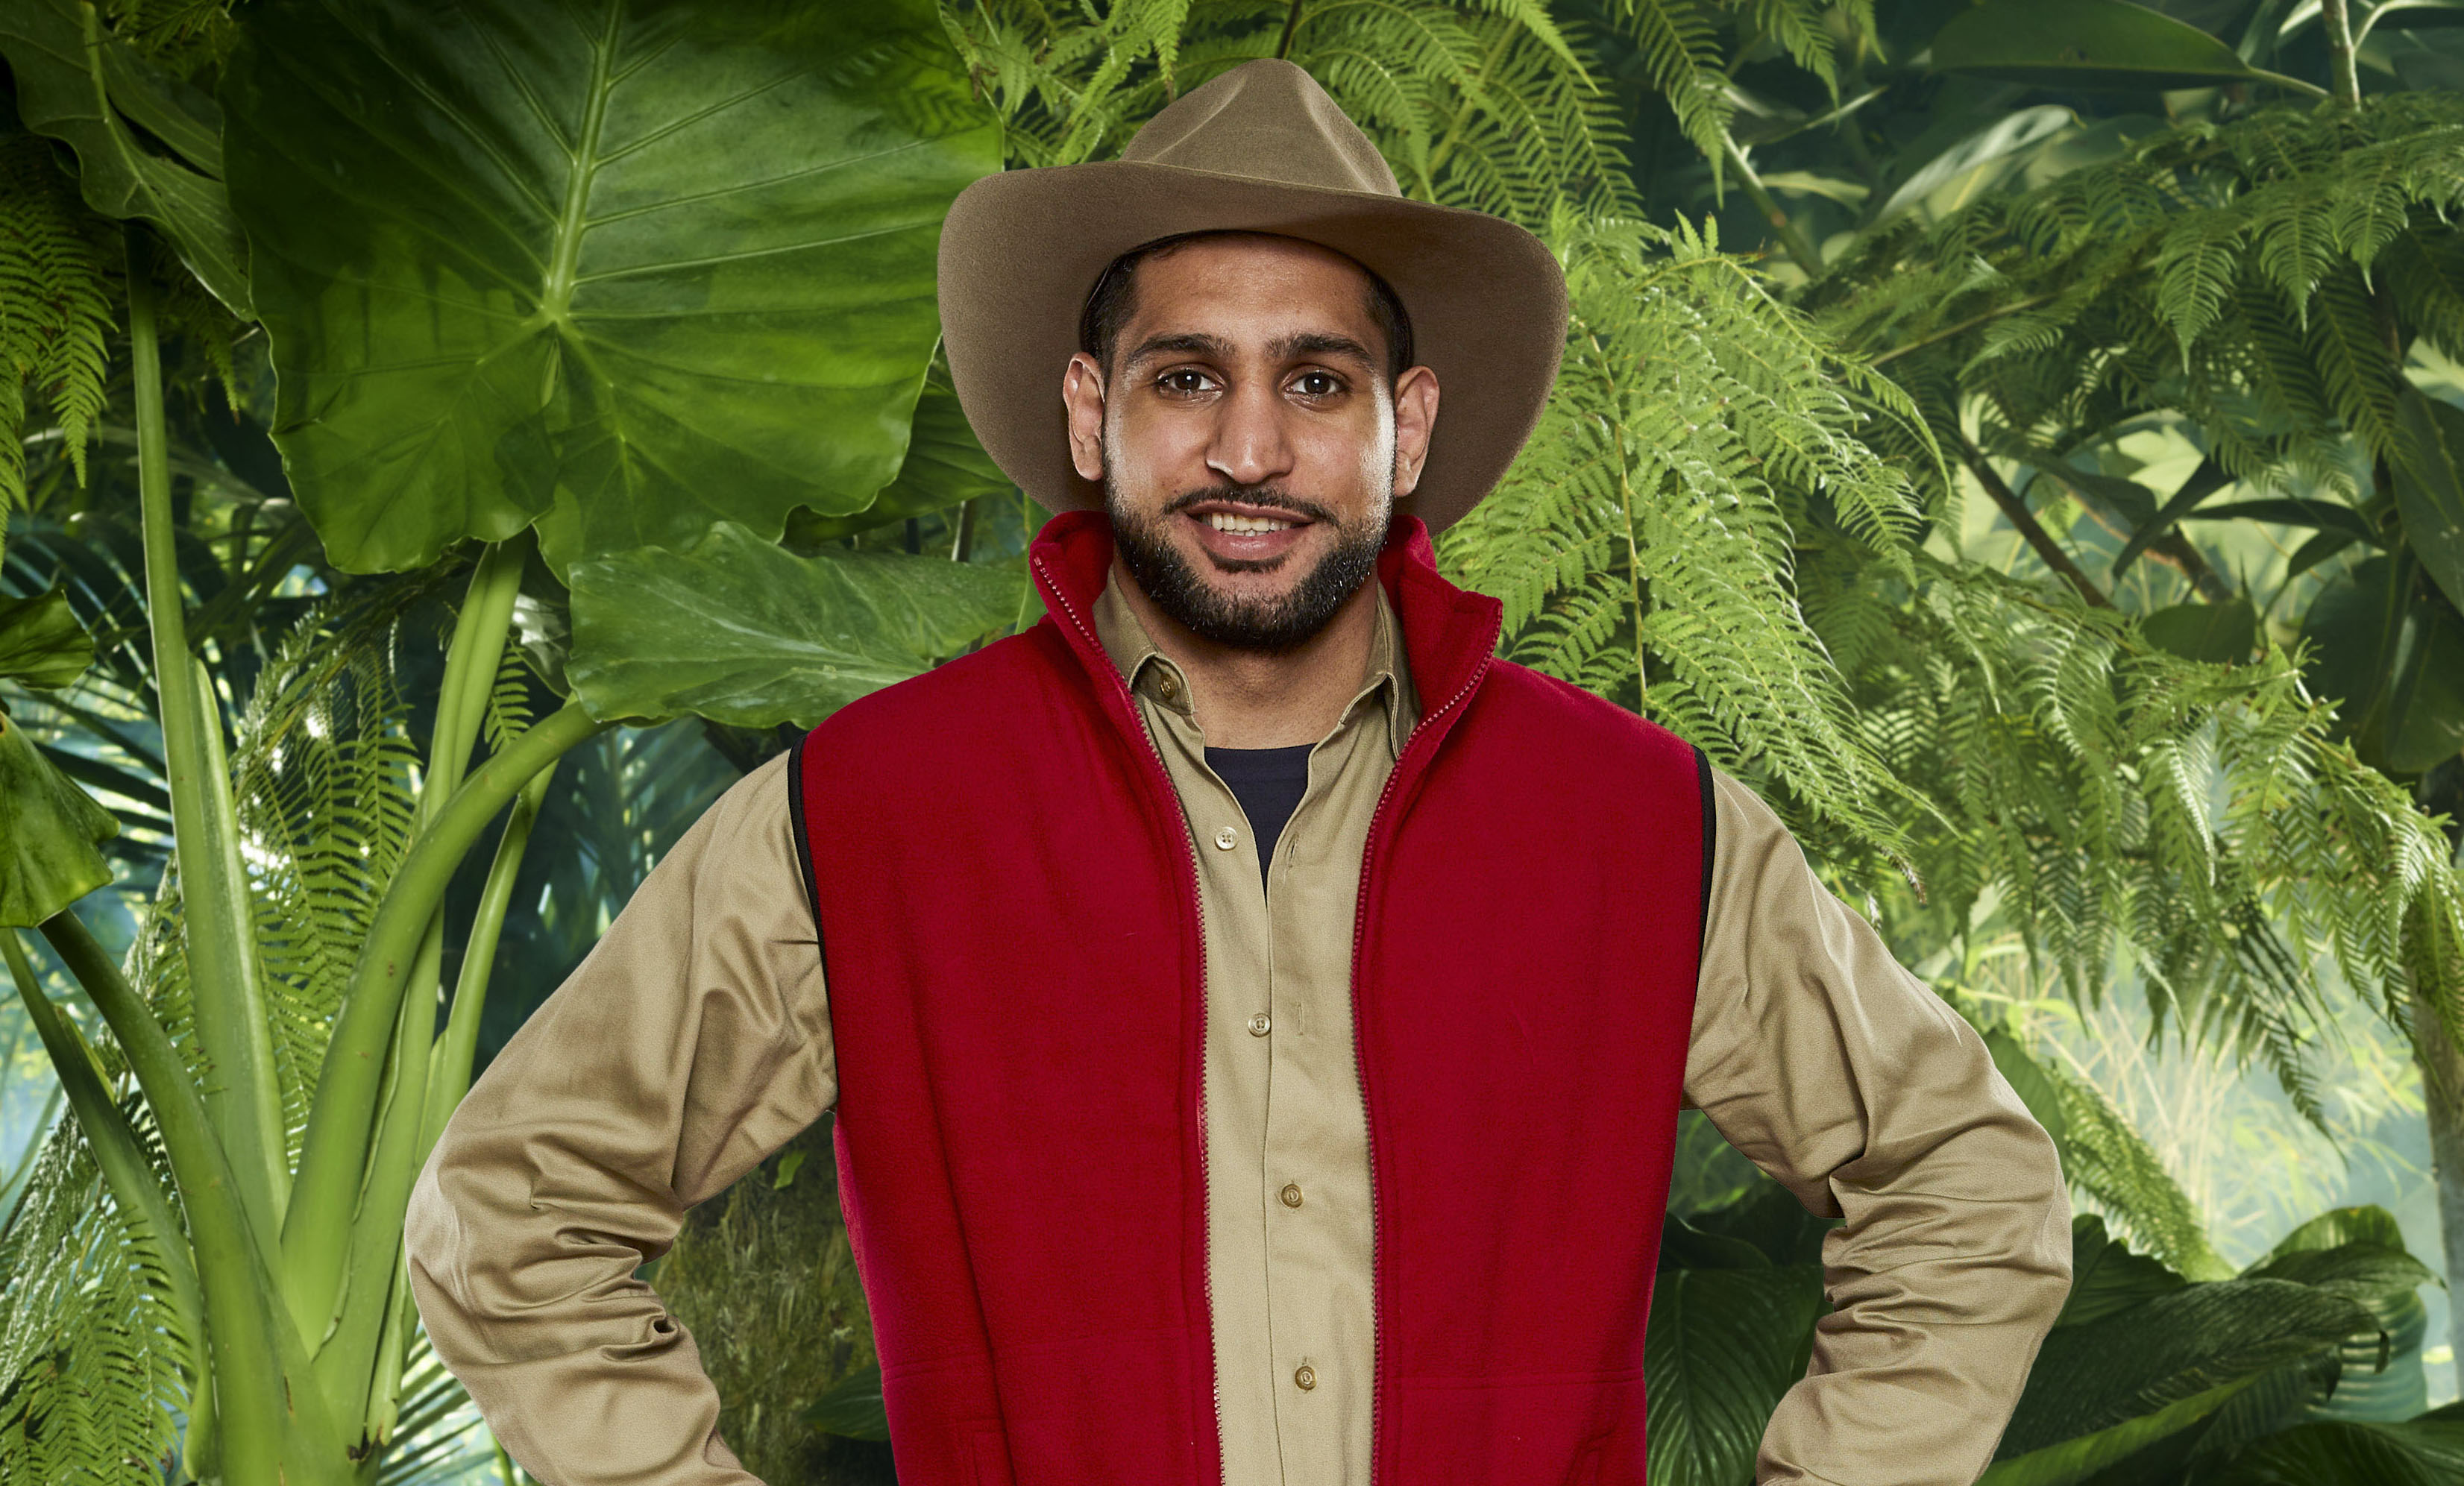 Amir Khan I'm a Celebrity 2017 profile